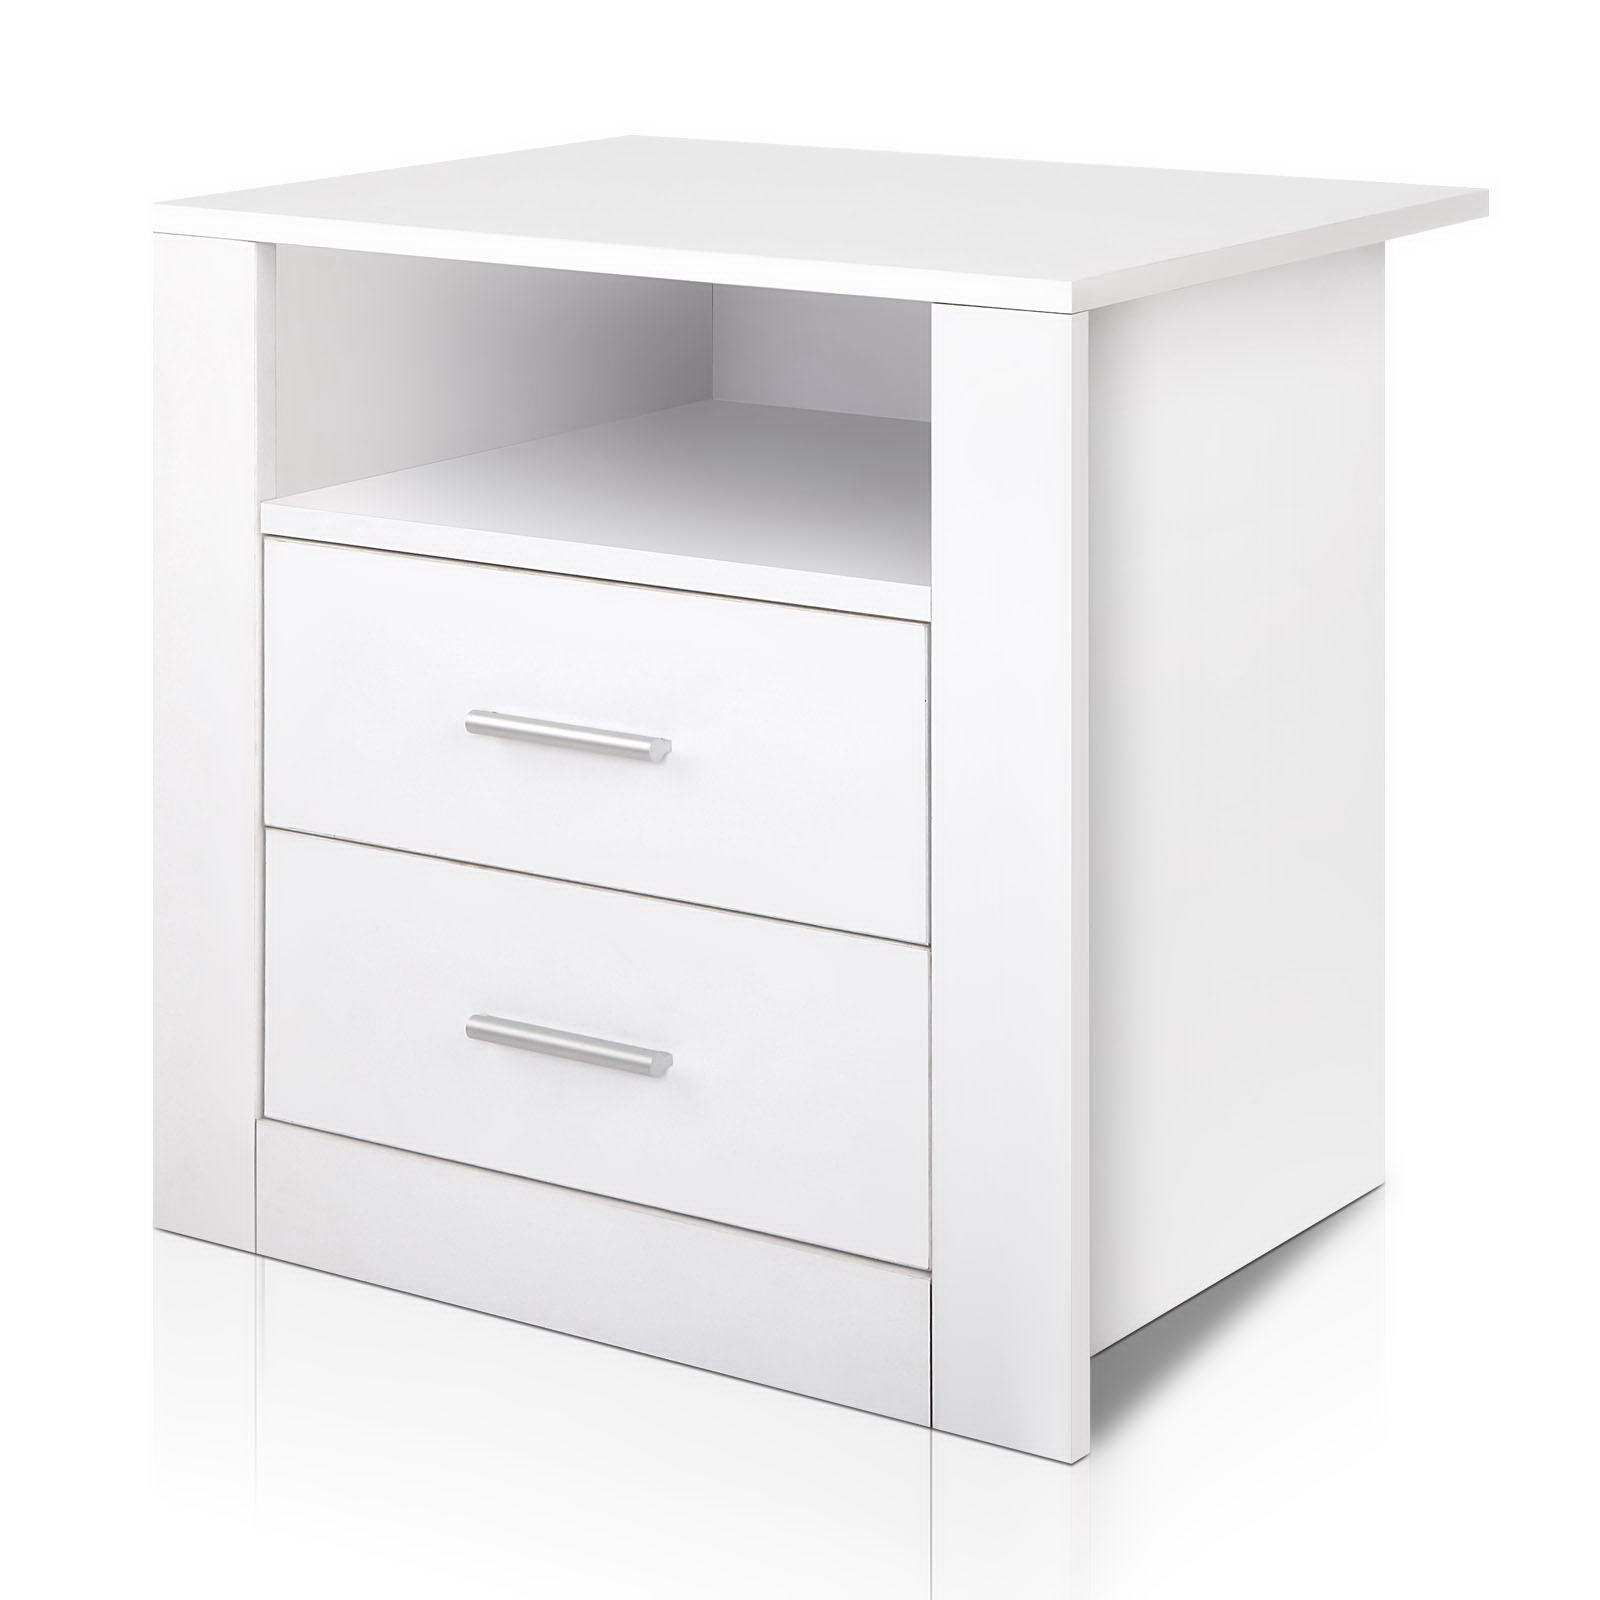 🥇 New Artiss Anti-Scratch Bedside Table 2 Drawers – White ⭐+ Fast Free Shipping 🚀